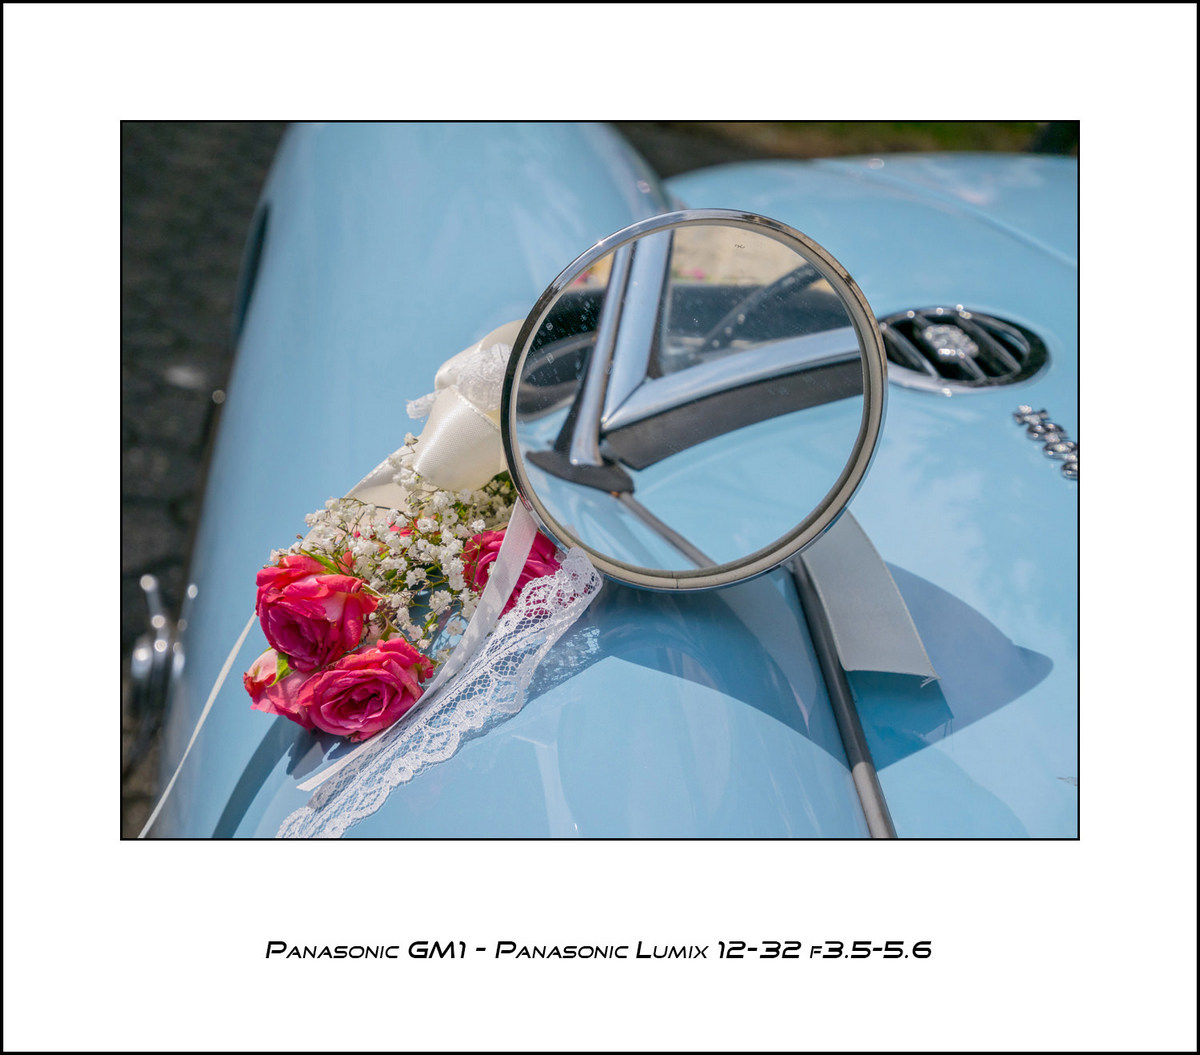 Panasonic GM1 - Panasonic 12-32 f3.5-5.6